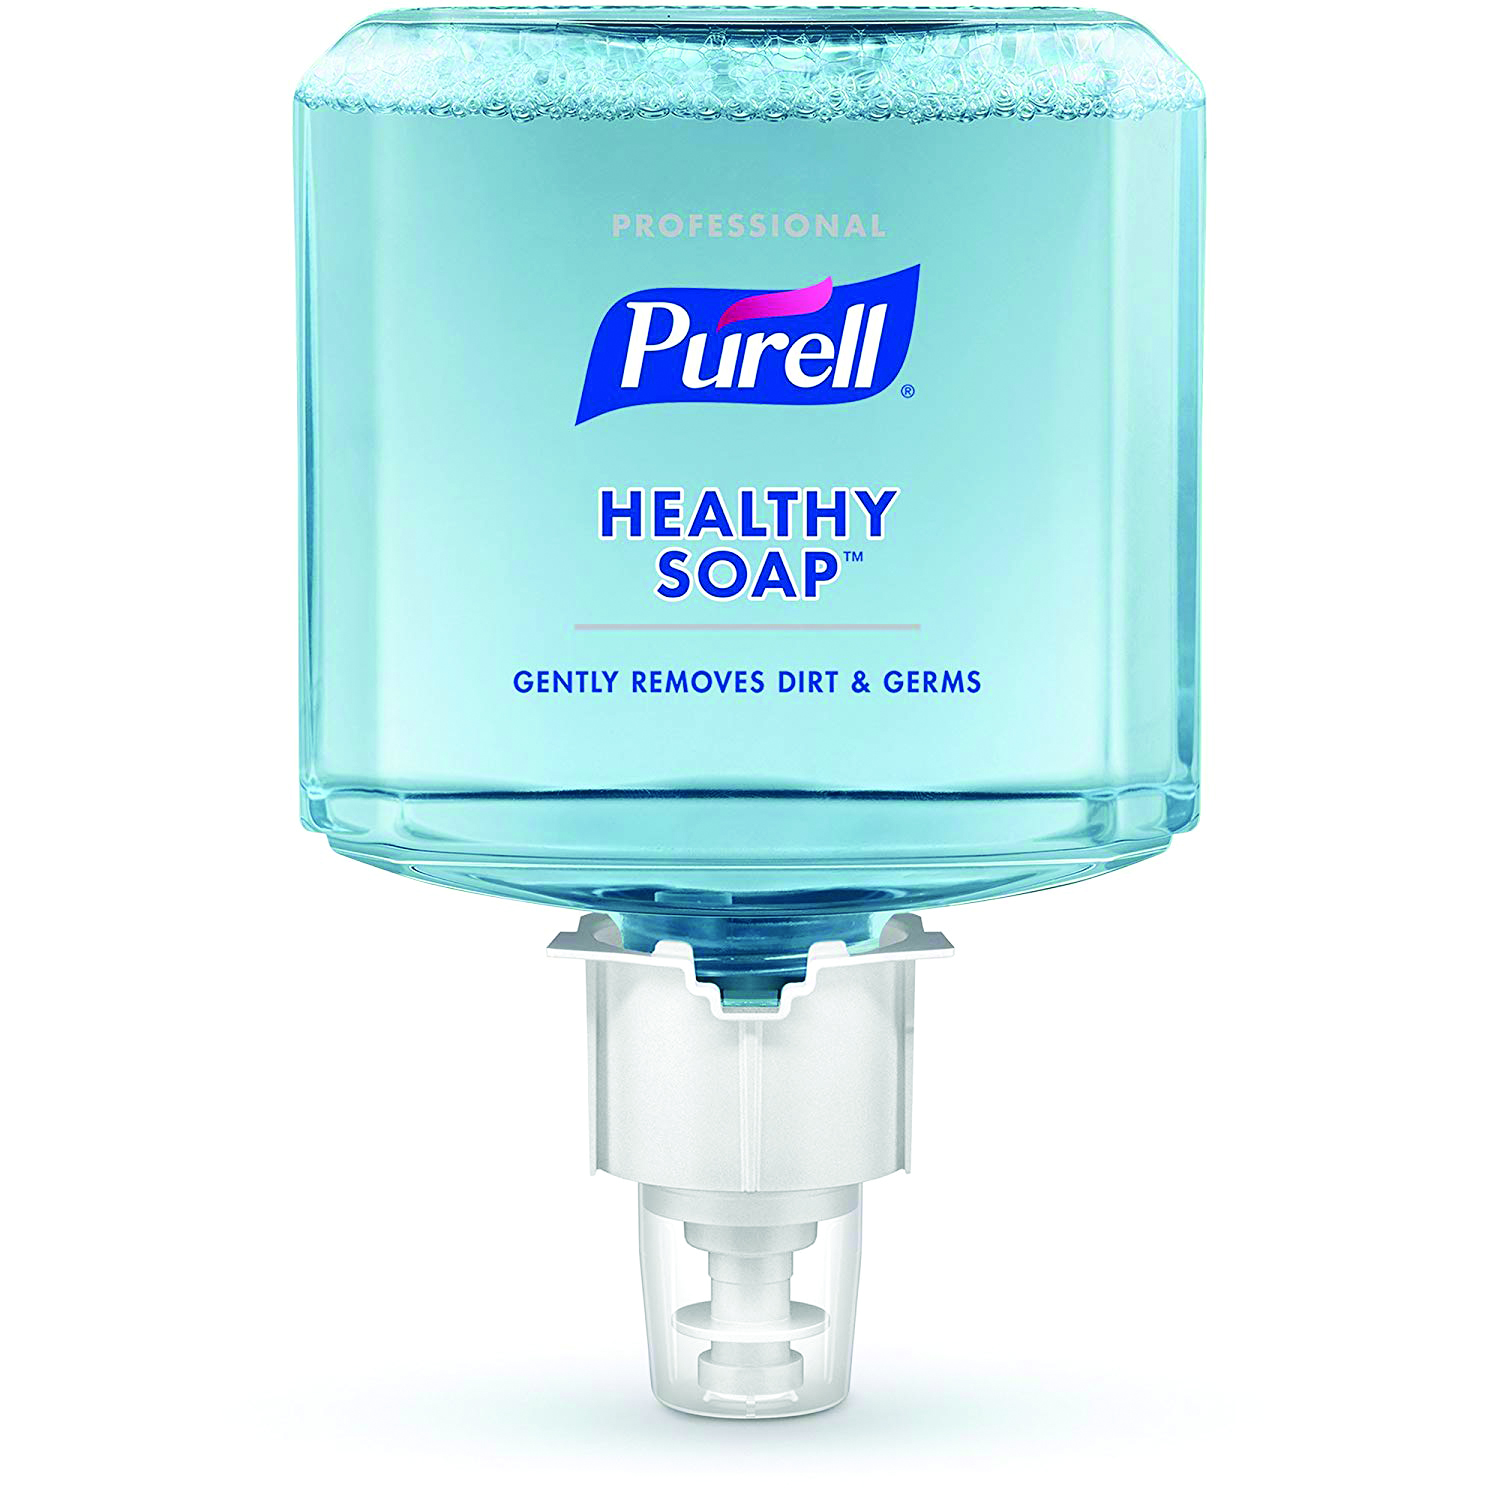 5077-02 - PURELL® Professional HEALTHY SOAP® Fresh Scent Foam-1200 mL Refill for Dispenser-----UOM: 2/CS